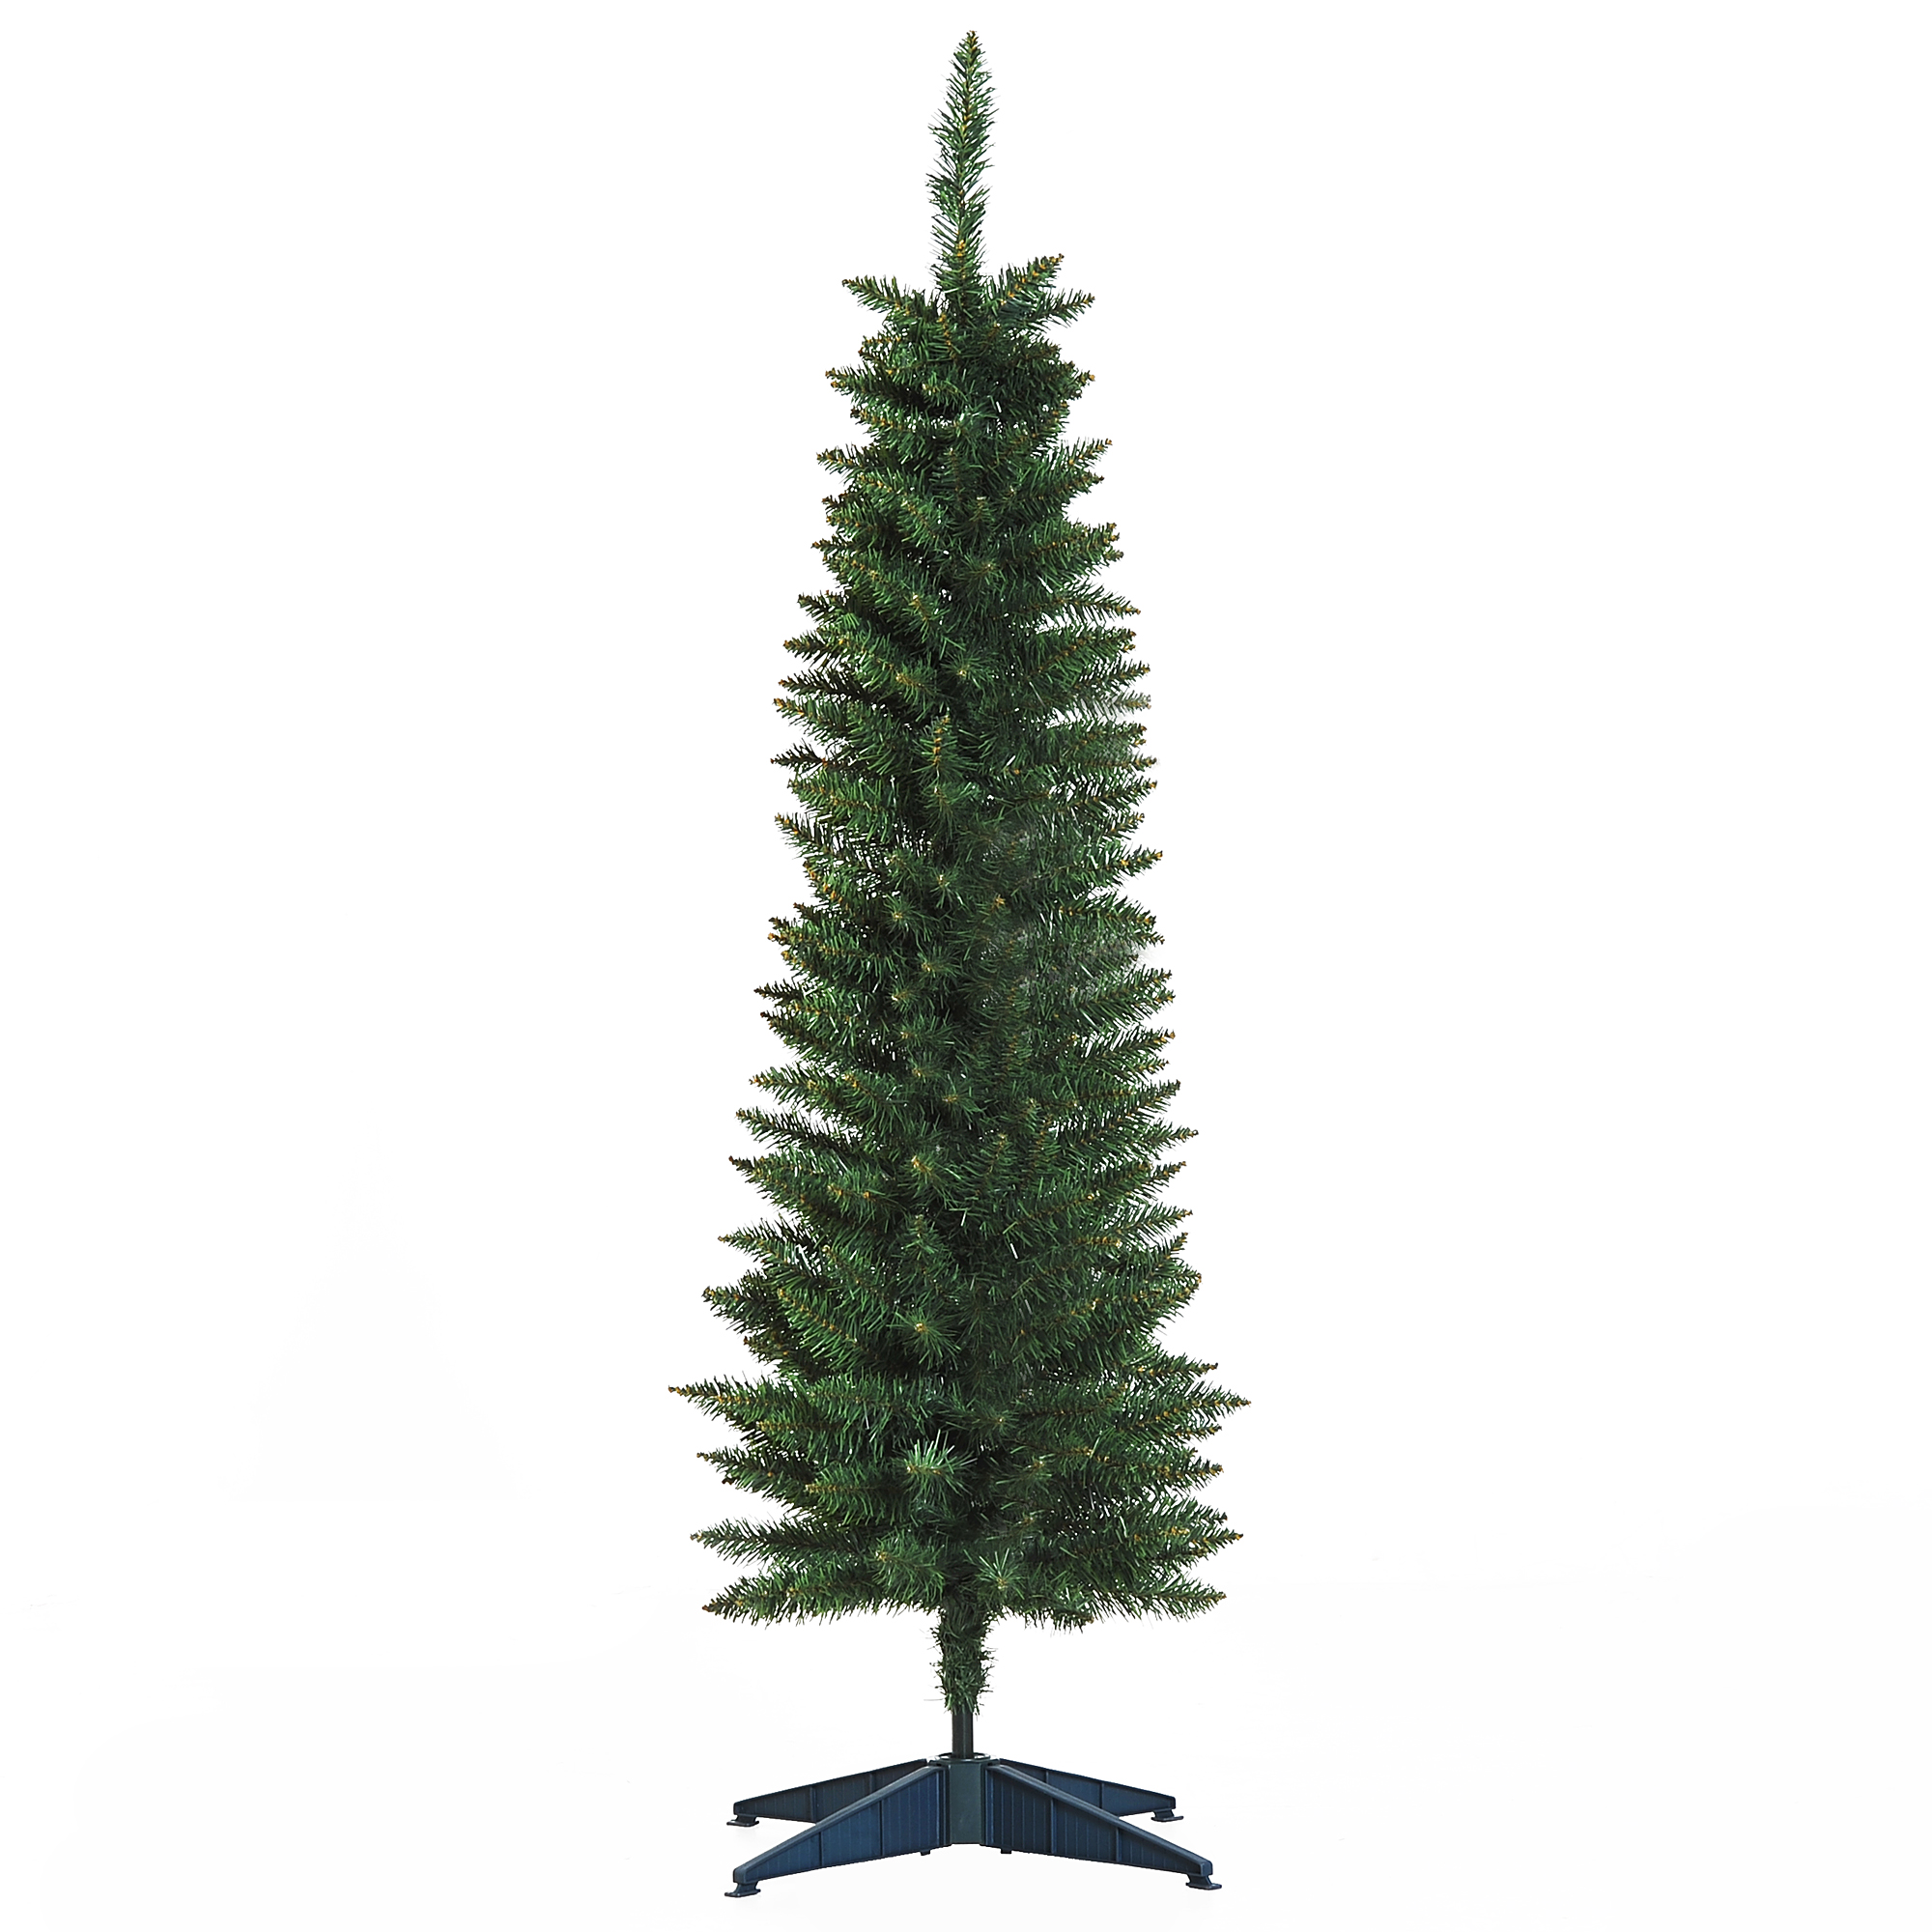 Image of £16.99 HOMCOM Artificial Pine Tree, 1.5m, Plastic Stand / 1.5m 5ft Pencil Slim Tall Christmas Tree with 294 Branch Tips Xmas Holiday Décor W/ 830-195 5056029806937